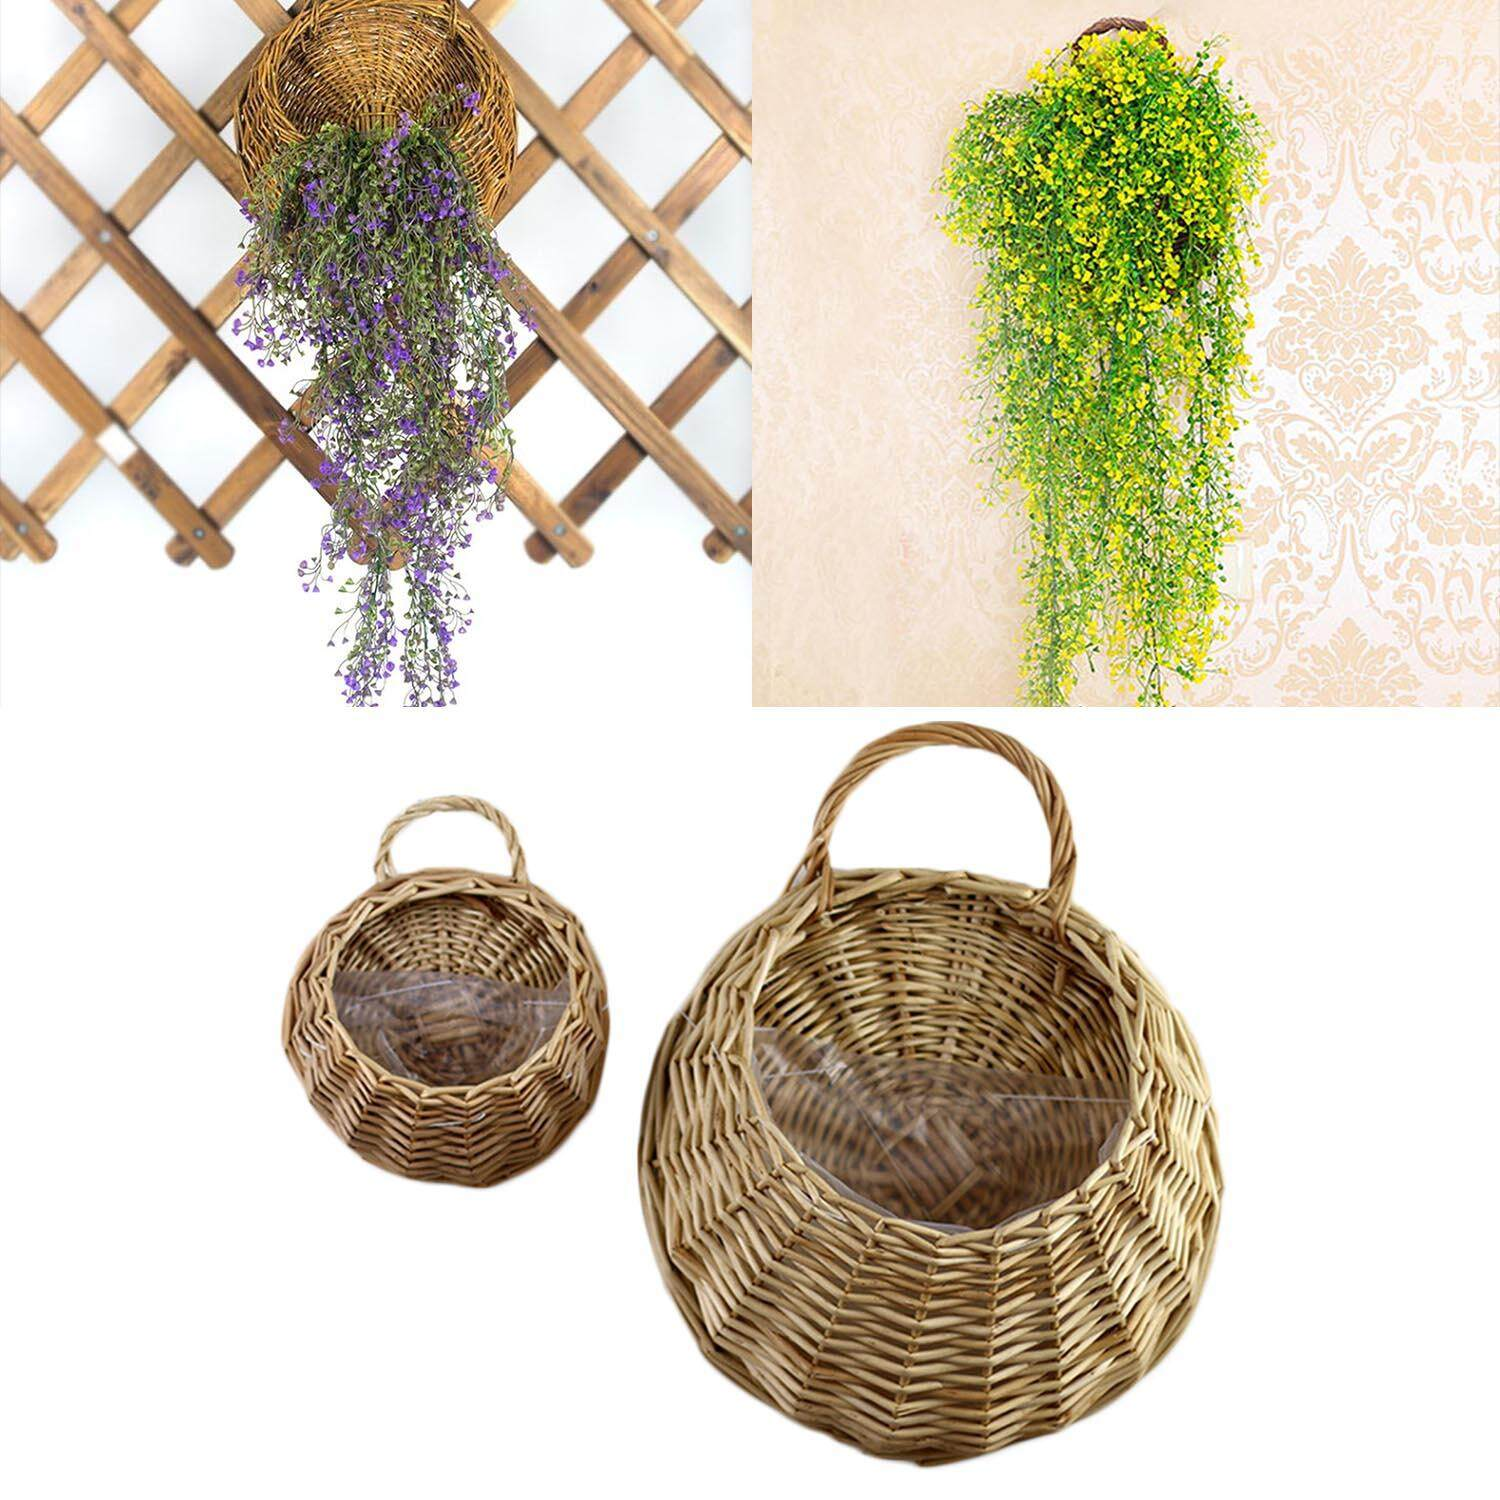 2pcs Wall Hanging Wicker Rattan Flower Basket Plant Pots Vase Container Home Wedding Restaurant Office Decoration Khaki